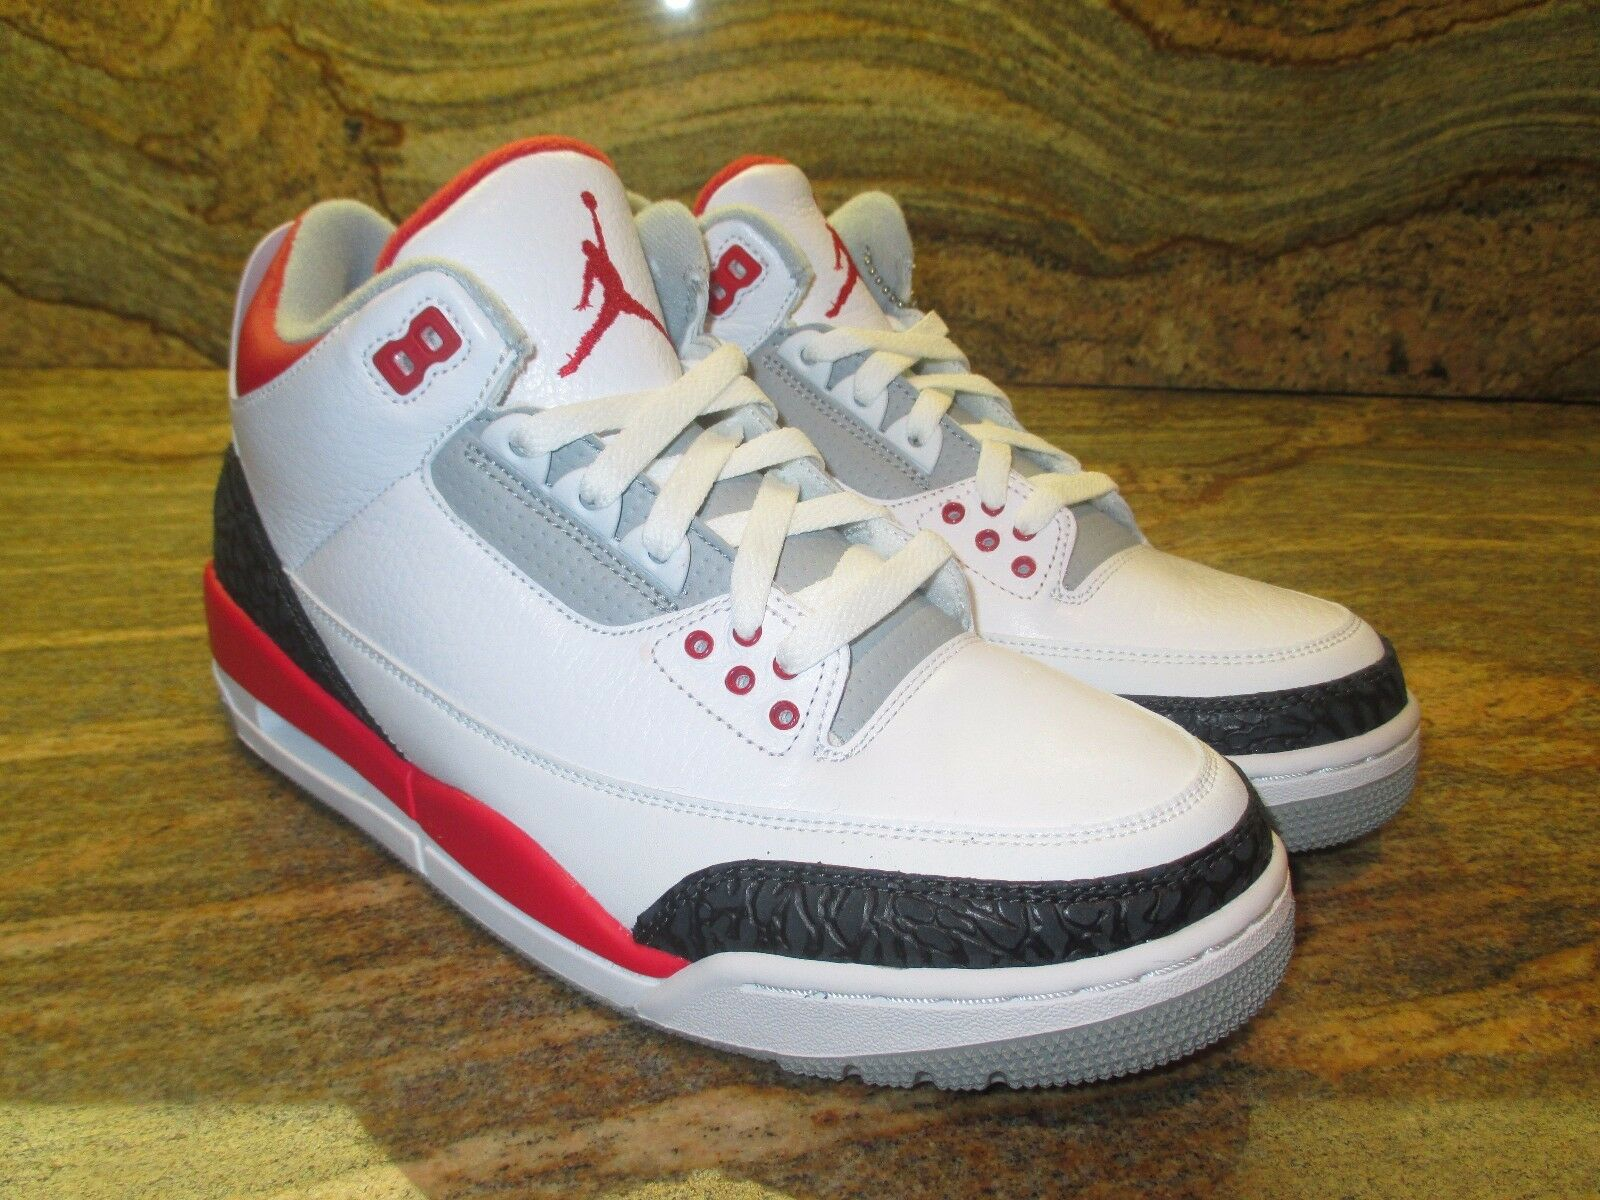 2013 Nike Air Jordan 3 III Retro 88 OG SZ 9 Fire Red White Cement 136064-120